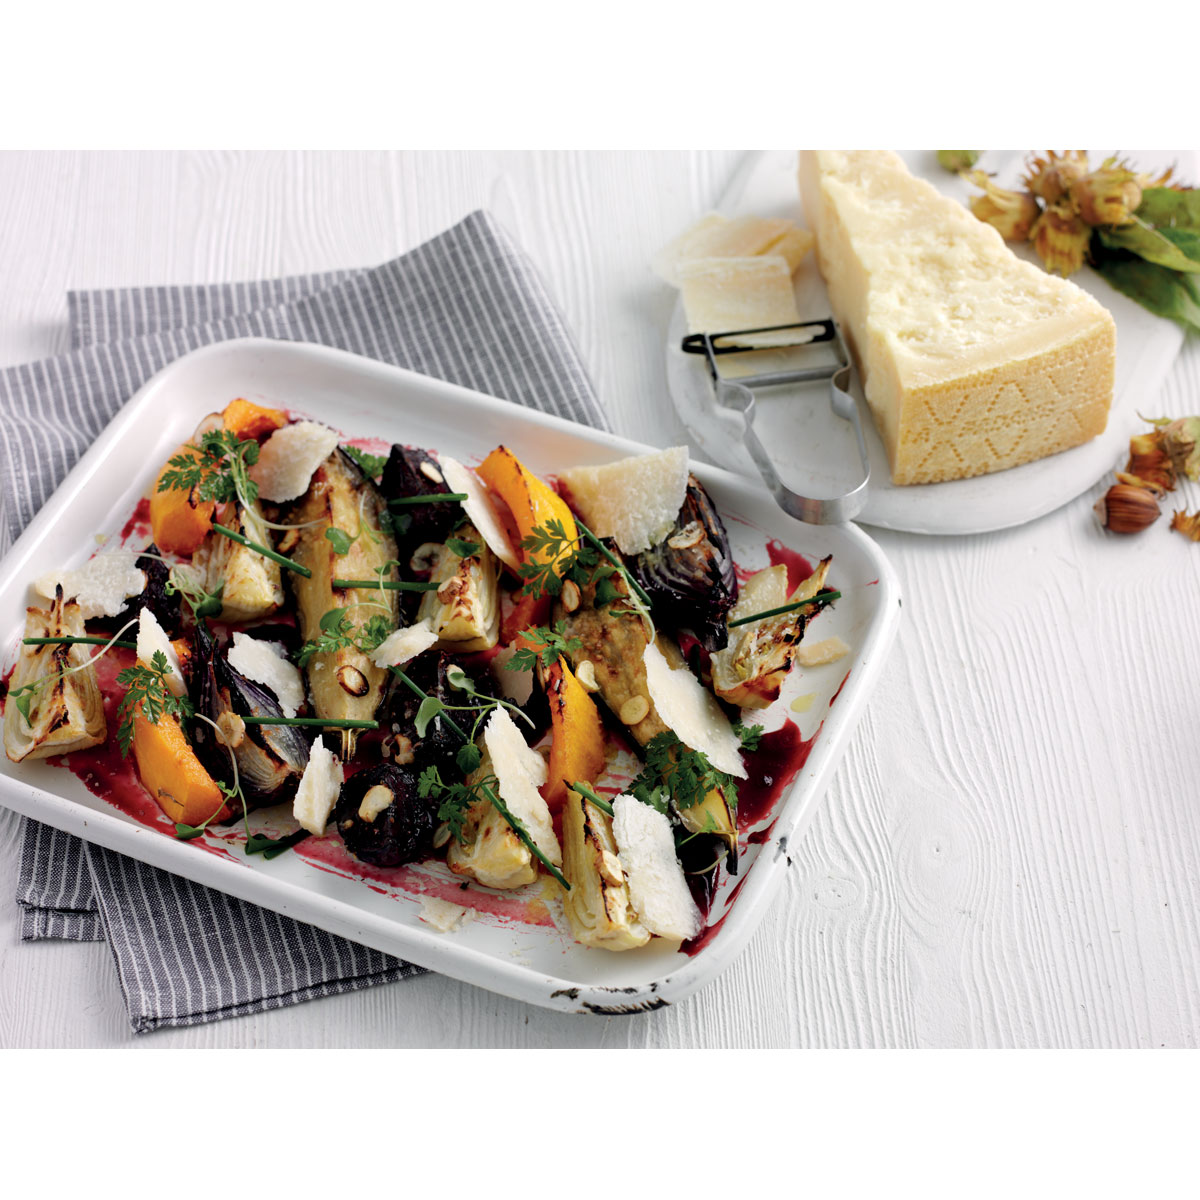 "Oven roasted vegetables with fresh hazelnuts or cobnuts, Grana Padano shavings ""Agrodolce"""